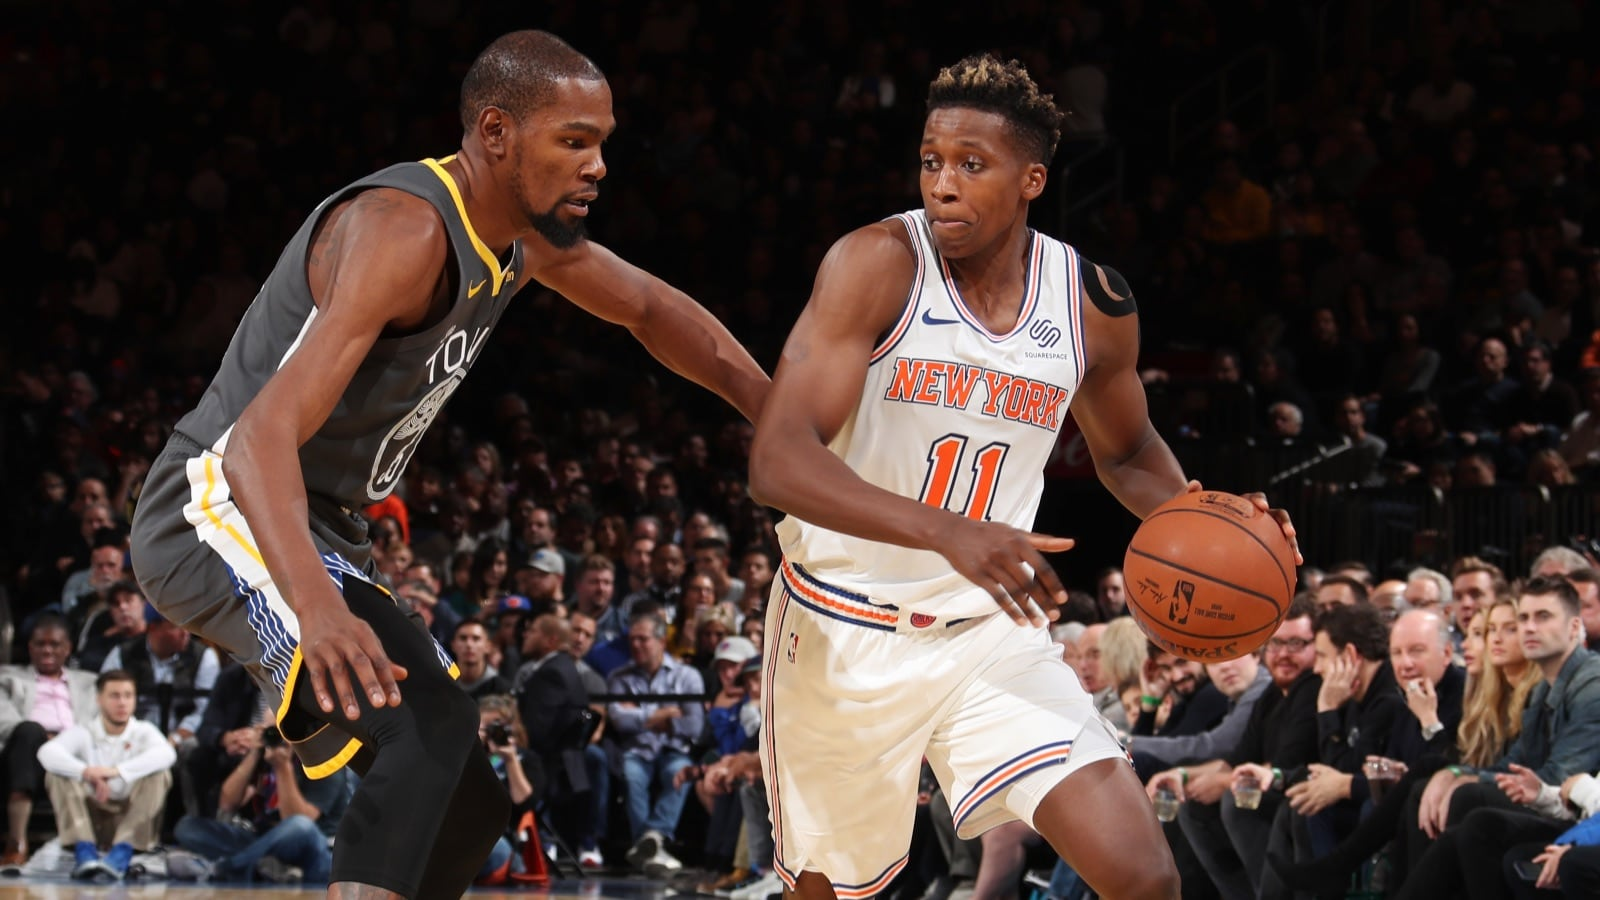 Kevin Durant #35 of the Golden State Warriors defends against Frank Ntilikina #11 of the New York Knicks during the game on October 26, 2018 at Madison Square Garden in New York City, New York.